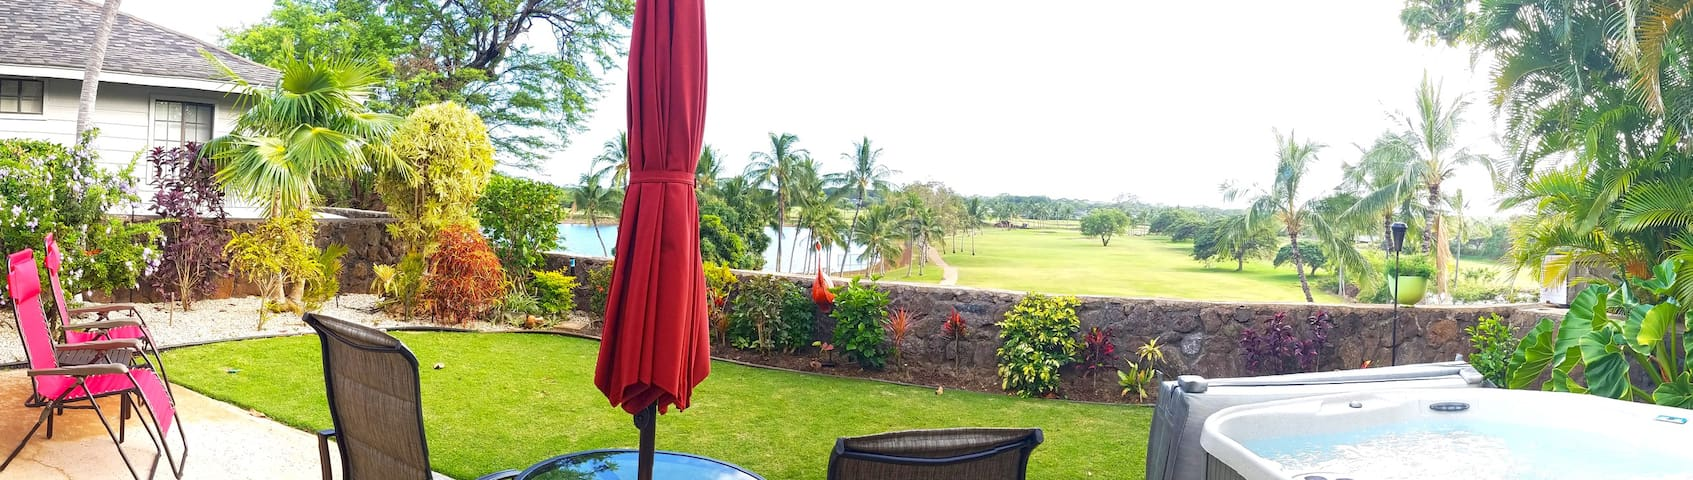 Private room overlooking golf course - Ewa Beach - House